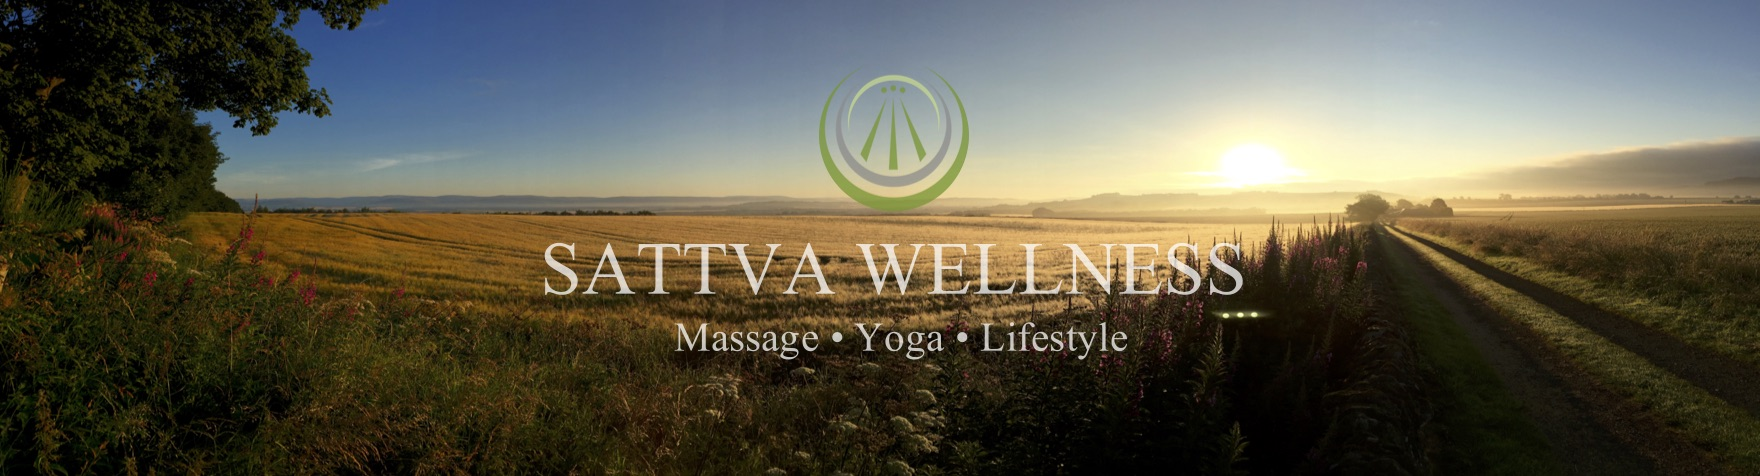 Sattva Wellness is a local, growing business operating from Forfar and Dundee with the intention to enhance lifestyle and create balance of health within the community. The team of therapists offer professional and high standard services, including Sports & Remedial Massage, Dry Needling, Cupping, Taping, Reflexology, treating chronic and acute conditions, all whilst evaluating and treating each patient individually.  Specialising in sports & remedial massage to an advanced level with fantastic experienced gained worldwide; having worked with the All Blacks, Scotland, South African, Australian & Fijian Rugby Teams, and much else ranging from professional runners, swimmers, triathletes, to local families, sports teams and communities.  Other therapies provided by Sattva Wellness include scheduled weekly Yoga for all levels, both mixed & men's only classes, and our popular SUP Yoga Classes available during Summer,featured in the Scotsman & Courier.